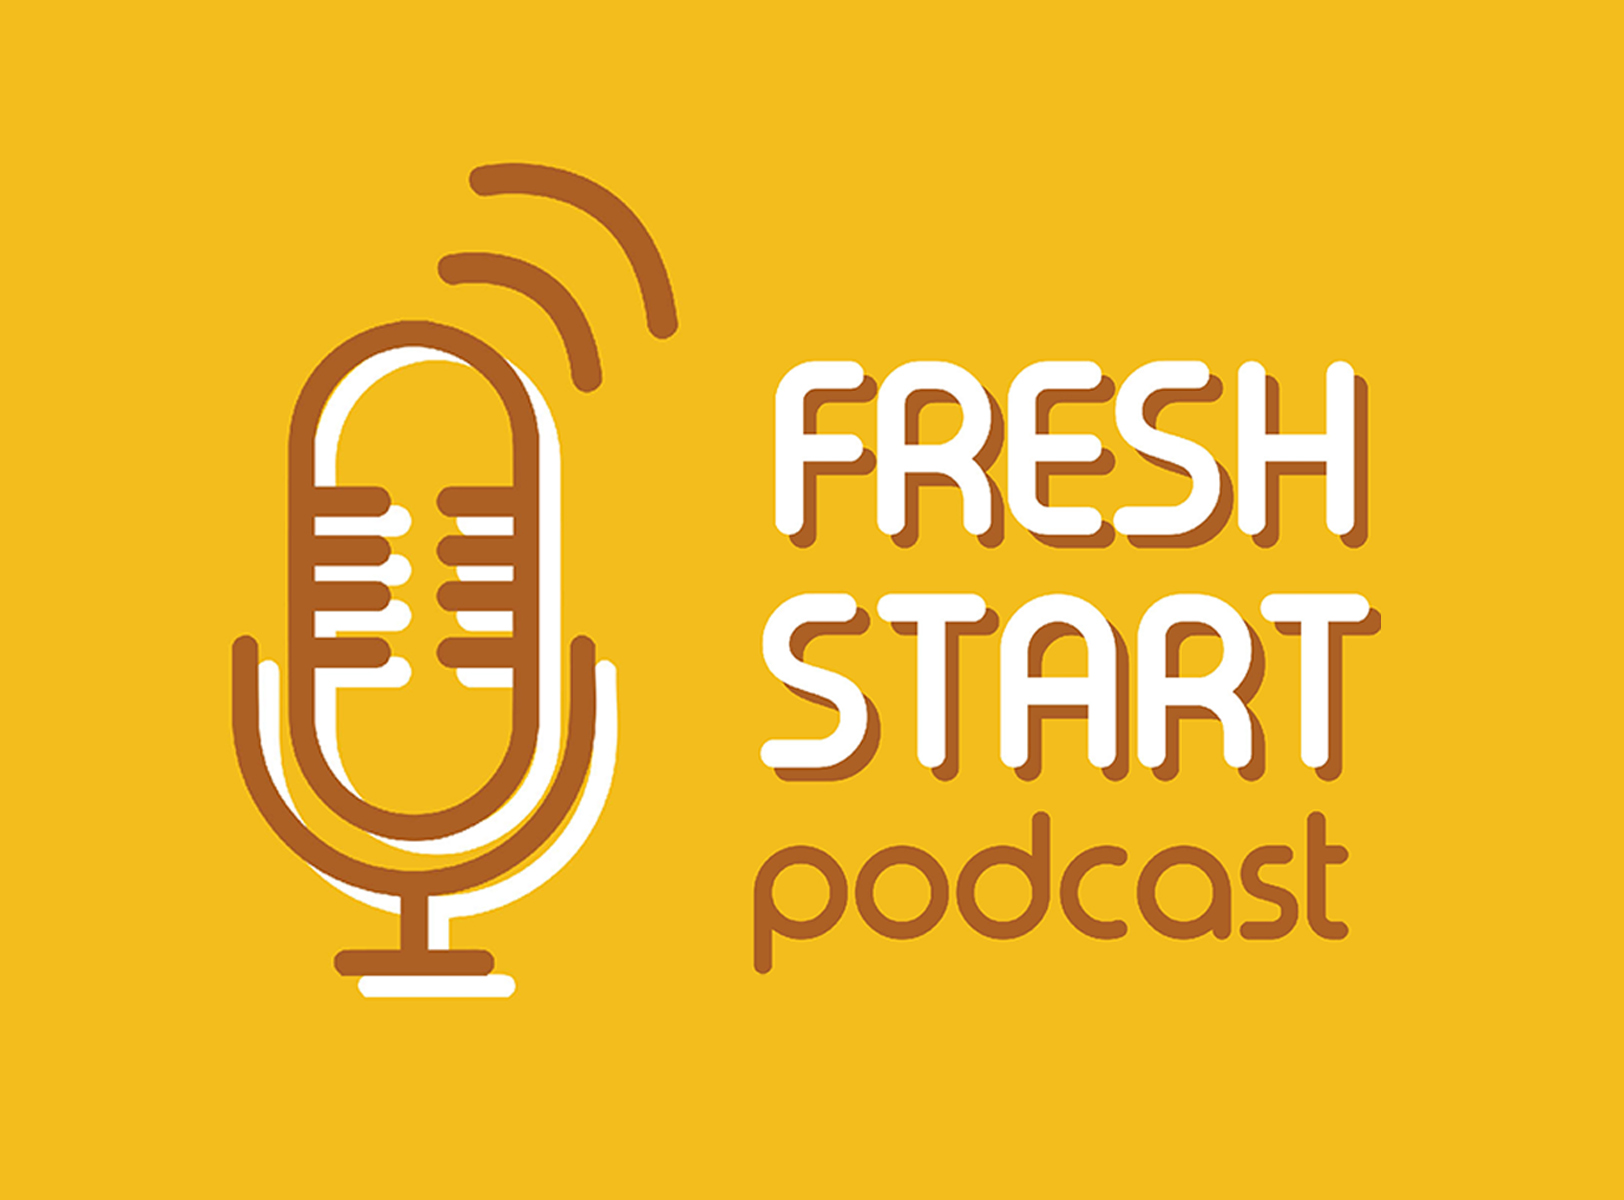 Fresh Start: Podcast News (3/31/2020 Tue.)